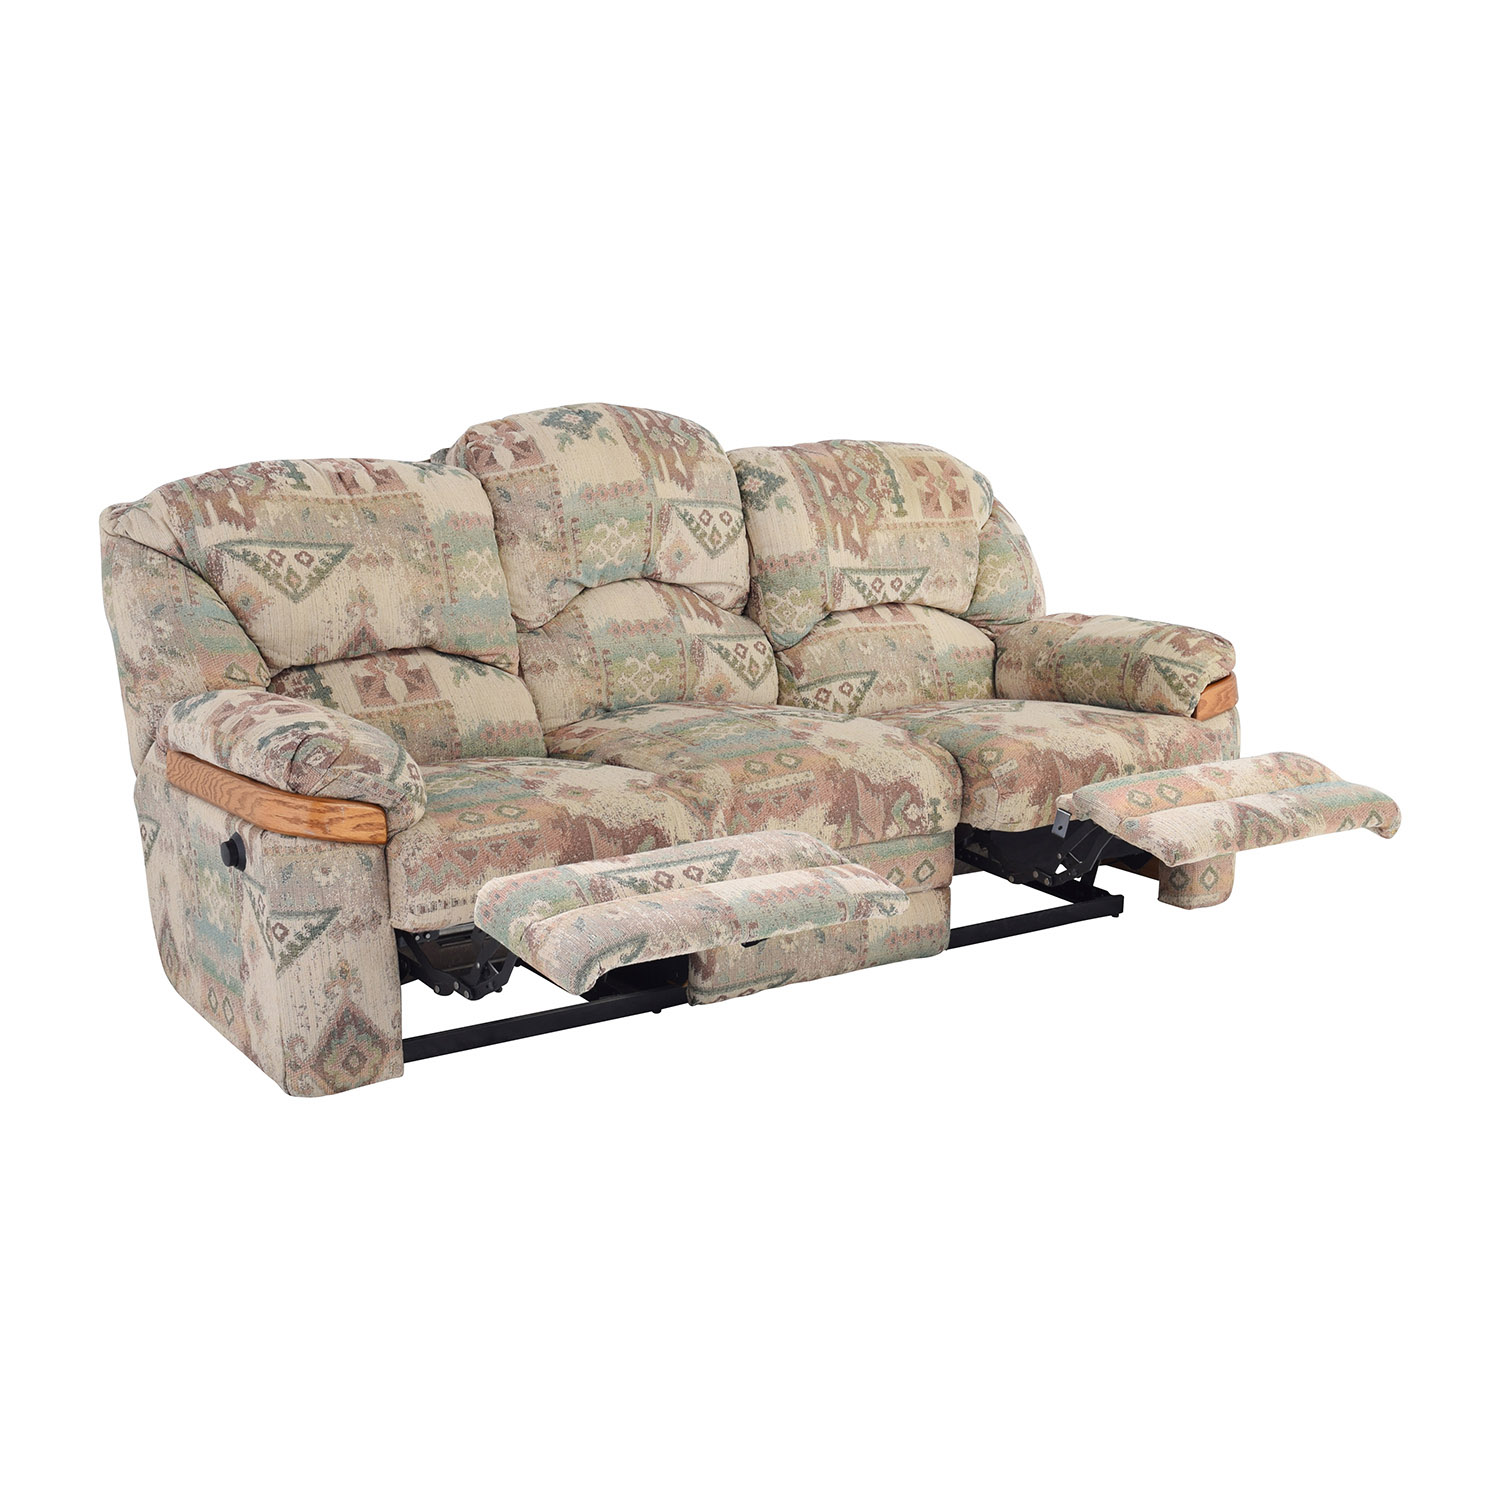 Patterned Fabric Recliner Sofa / Sofas